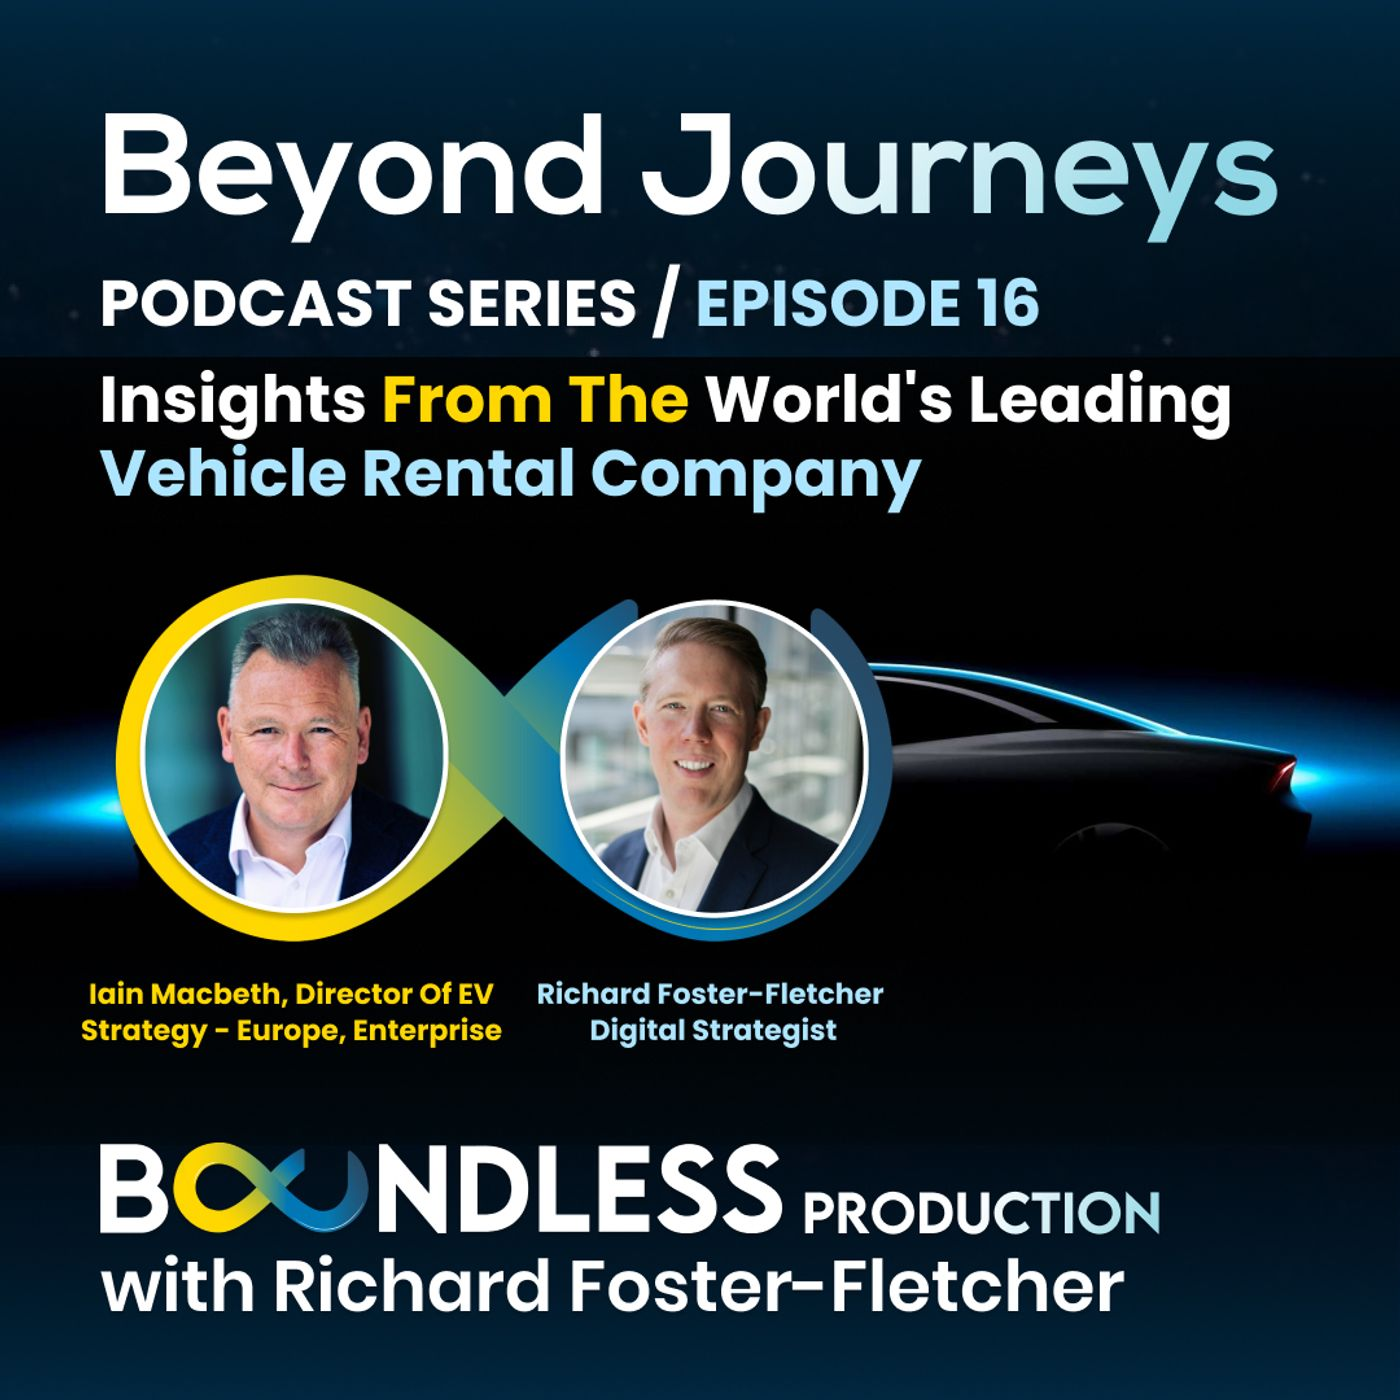 EP16 Beyond Journeys: Iain Macbeth, Director of EV Strategy - Europe, Enterprise: Insights from the world's leading vehicle rental company